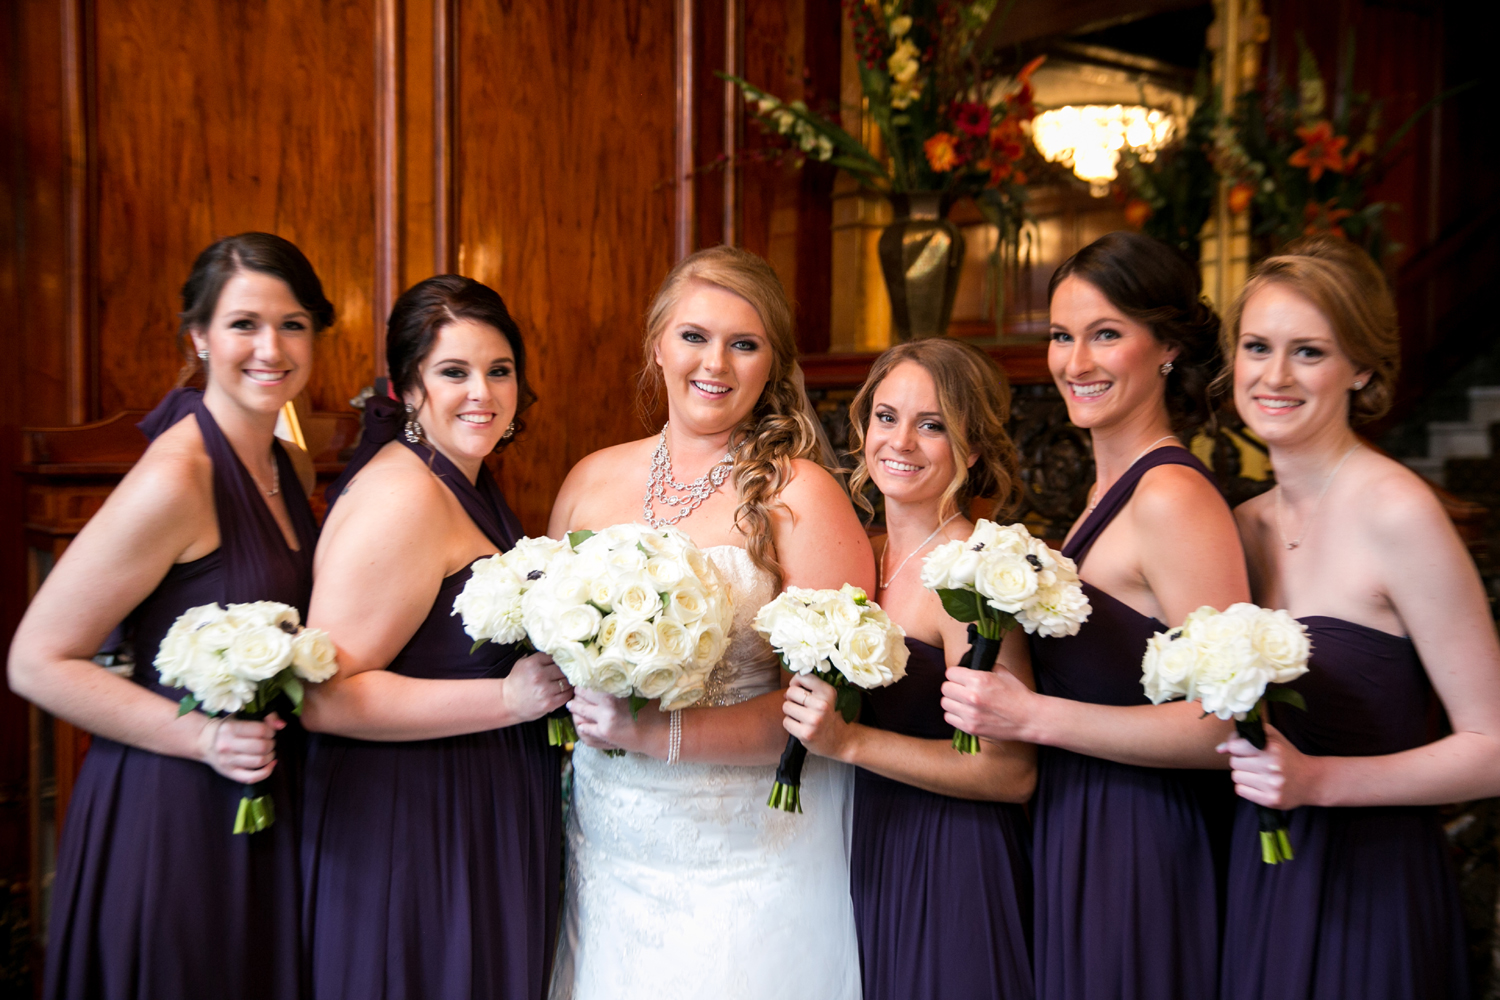 Bridalbliss.com | Portland Wedding | Oregon Event Planning and Design | Powers Studio Photography | Blum Floral